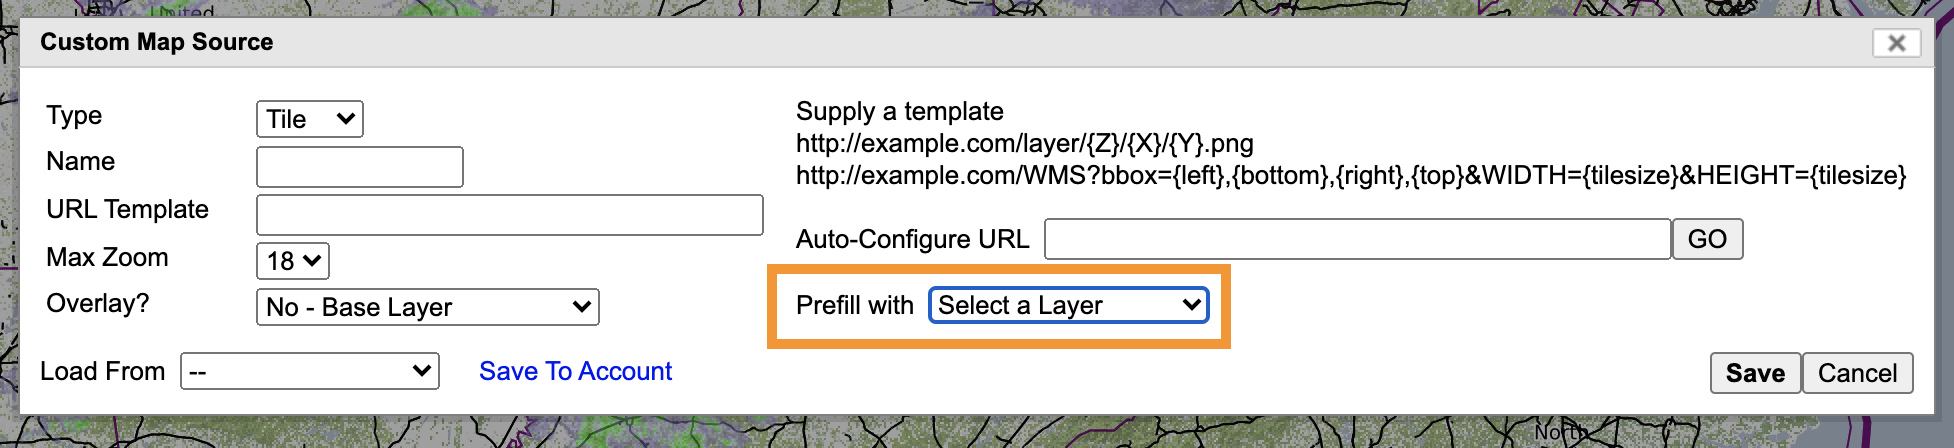 Prefill With dropdown menu is located in the lower-middle section of the box.